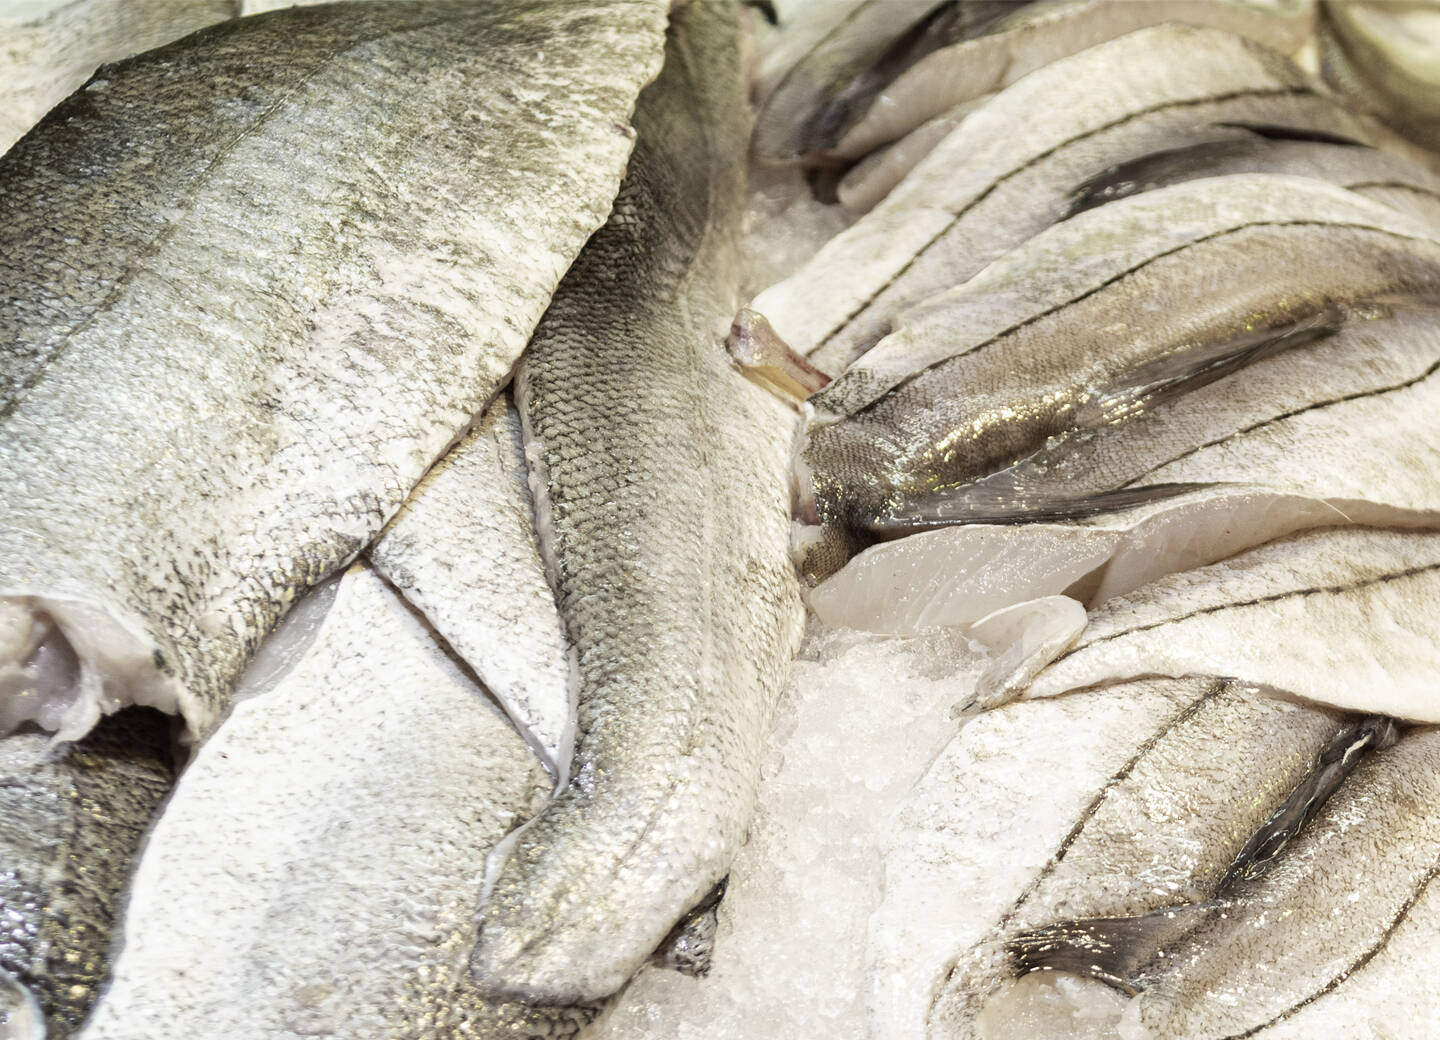 Atlantis Sustainably Sourced Seafood